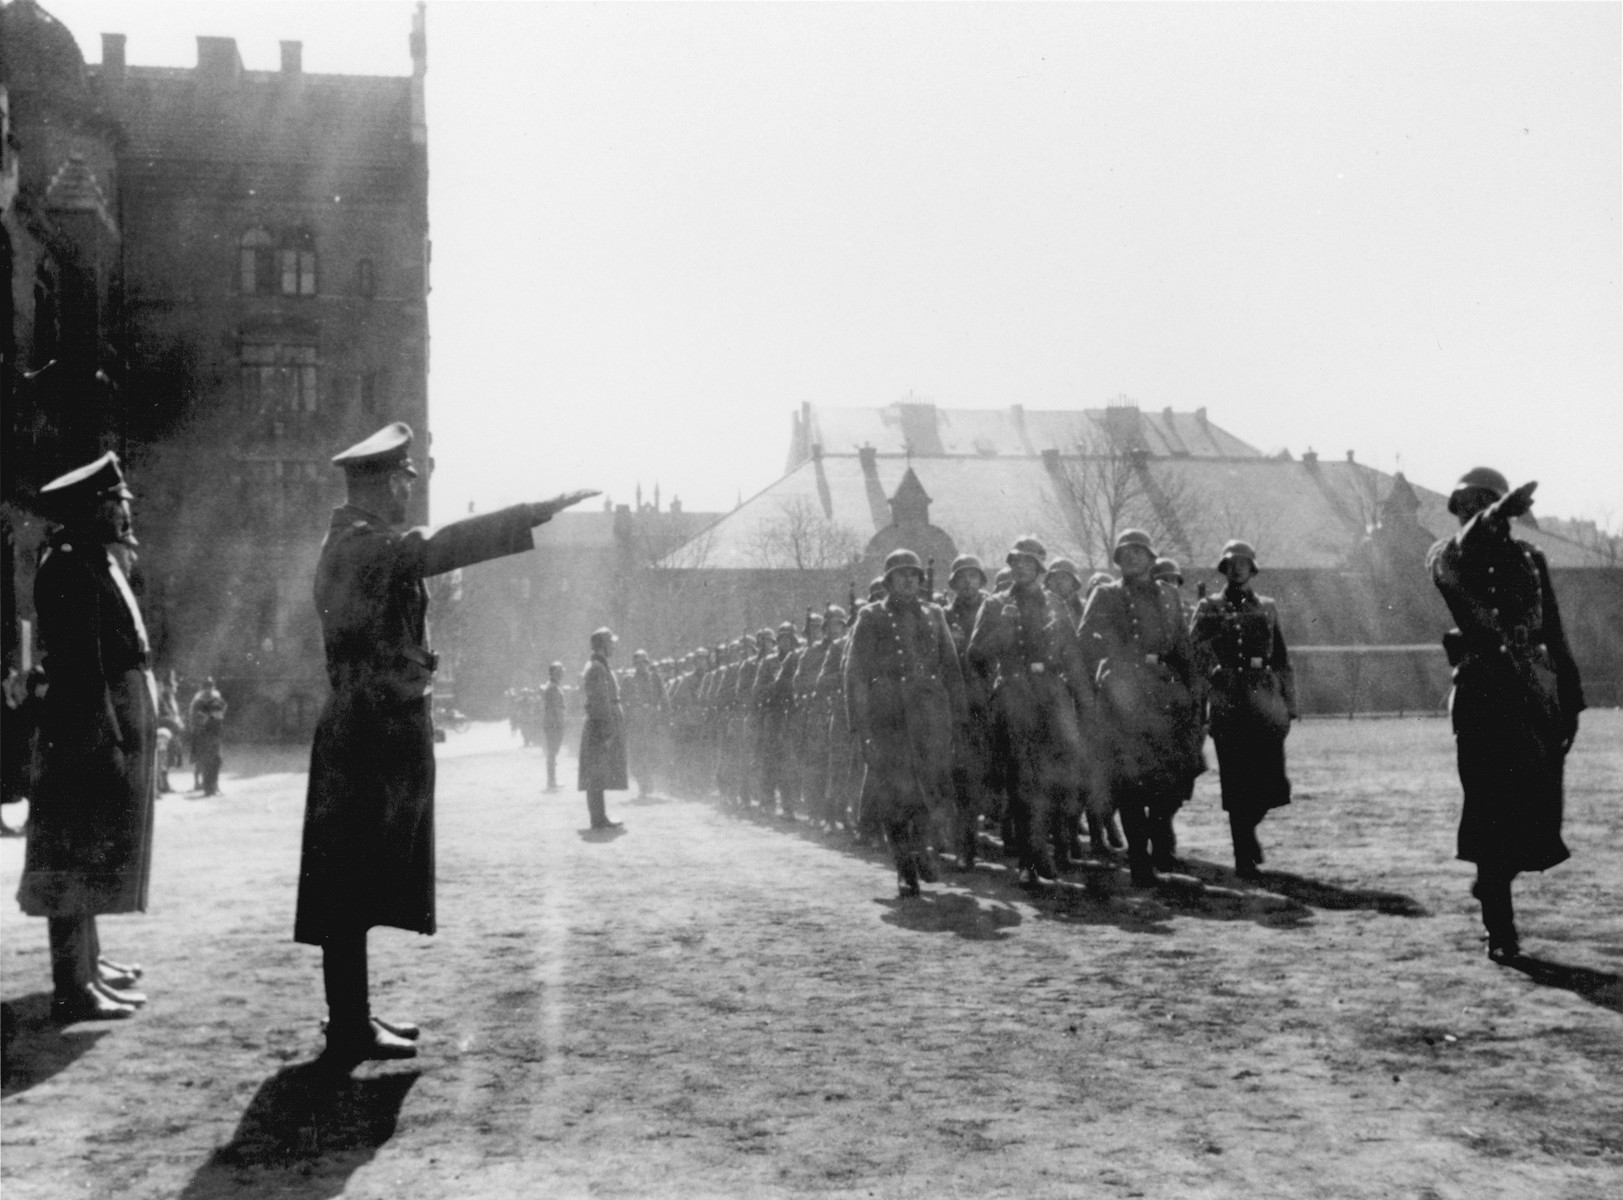 Members of Police Battalion 101 are saluted by their order police officers as they march in formation in Lodz.   One image from a photograph album belonging to a member of Police Battalion 101.